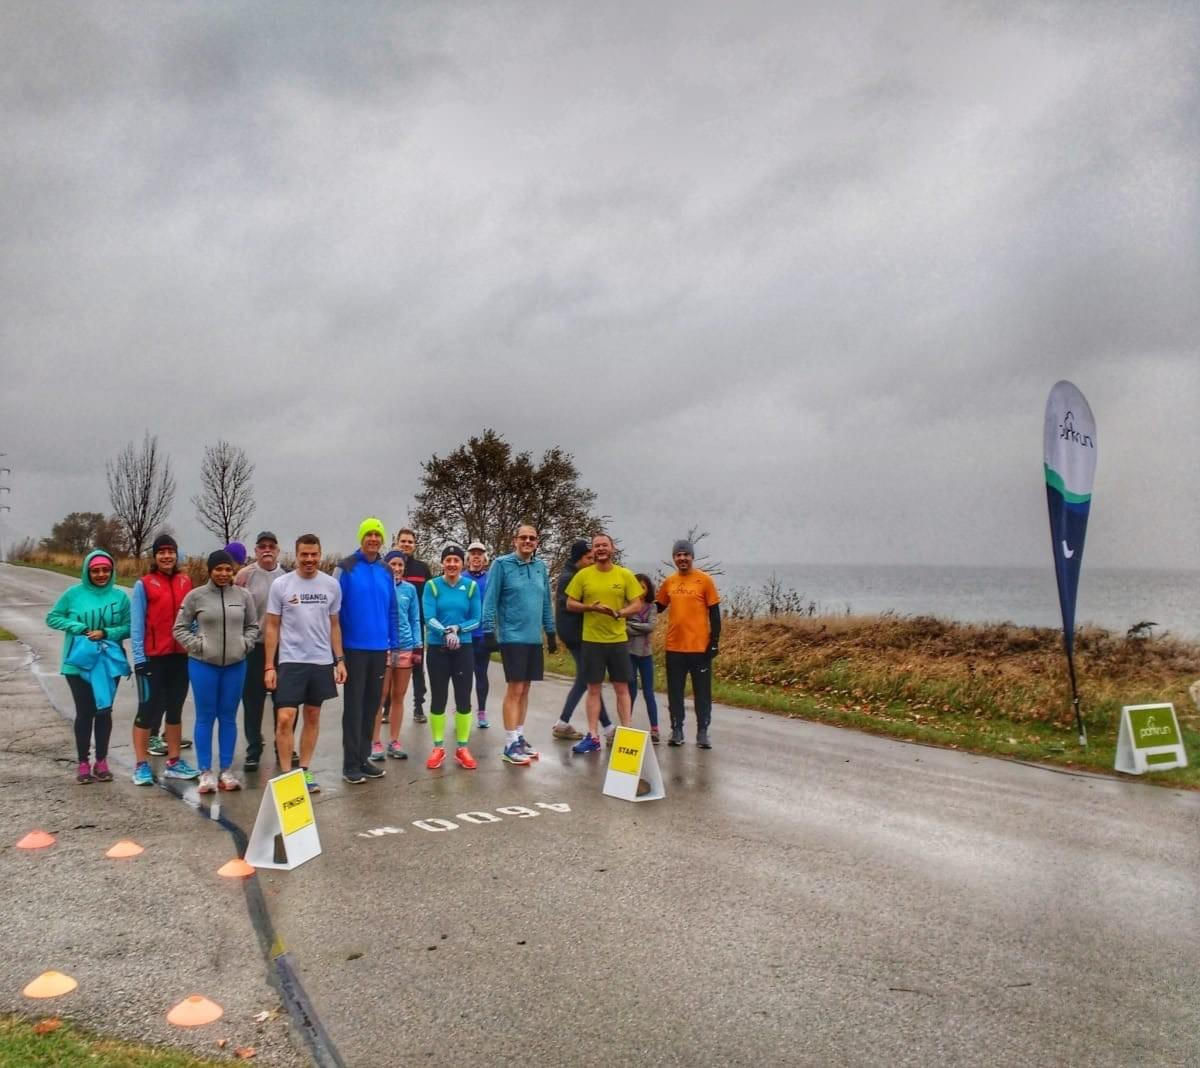 A group of well-wrapped runners gather at the start line of Beach Strip parkrun, Hamilton beside a cloudy Lake Ontario